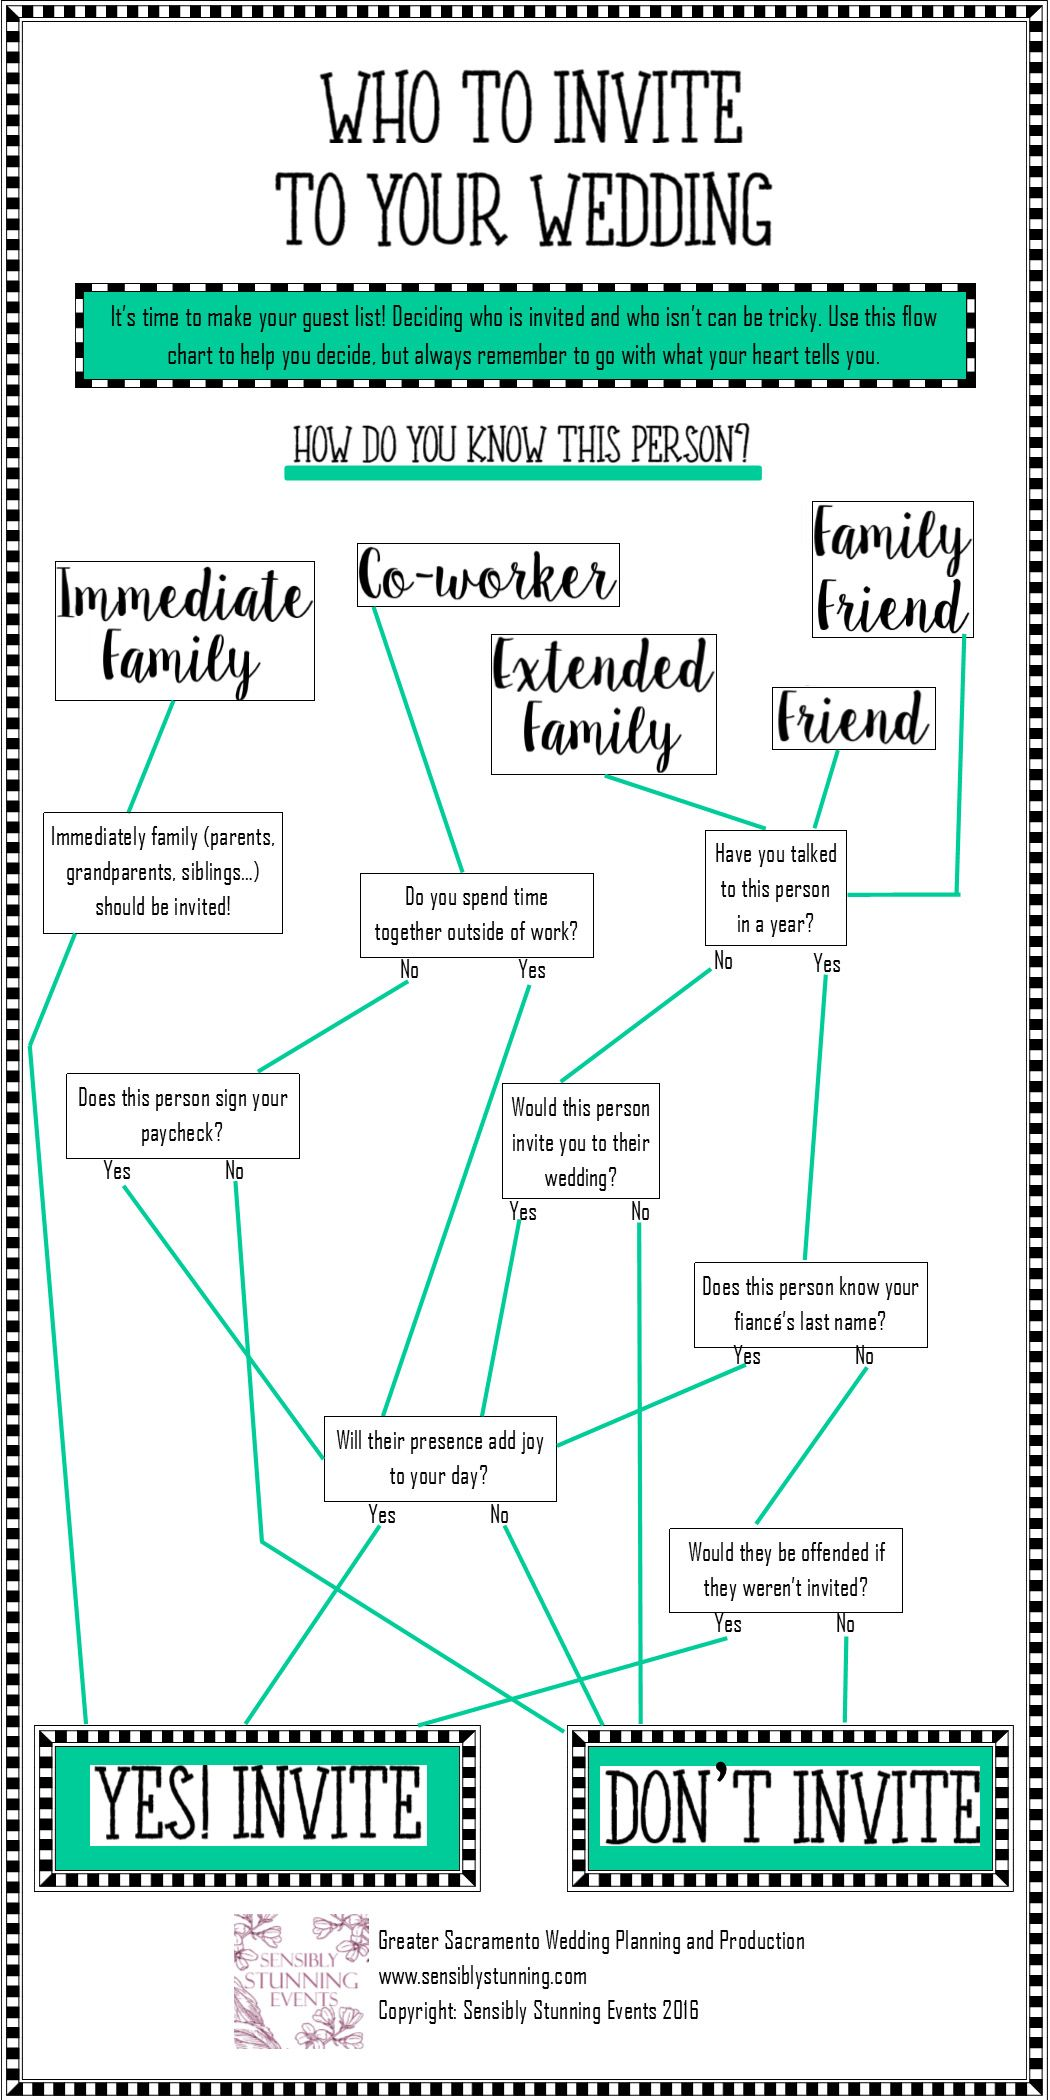 If You Need Help Deciding Who To Invite Your Wedding Use This Flow Chart Should All Of Extended Family